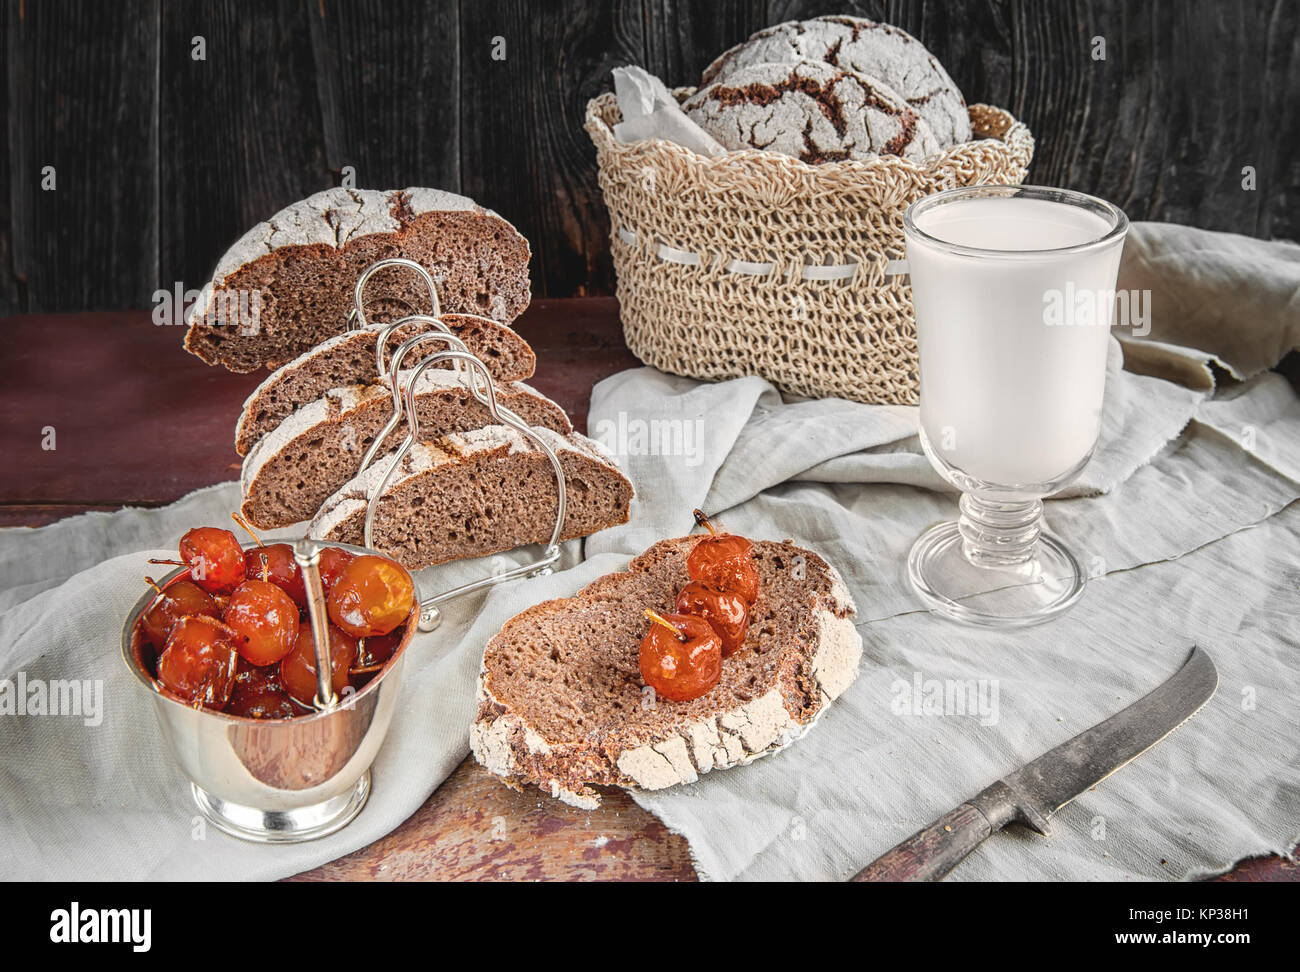 Beautiful loaf of bread from white wheat on a plate on a linen edge. Homemade pastry with homemade Apple marmalade. - Stock Image